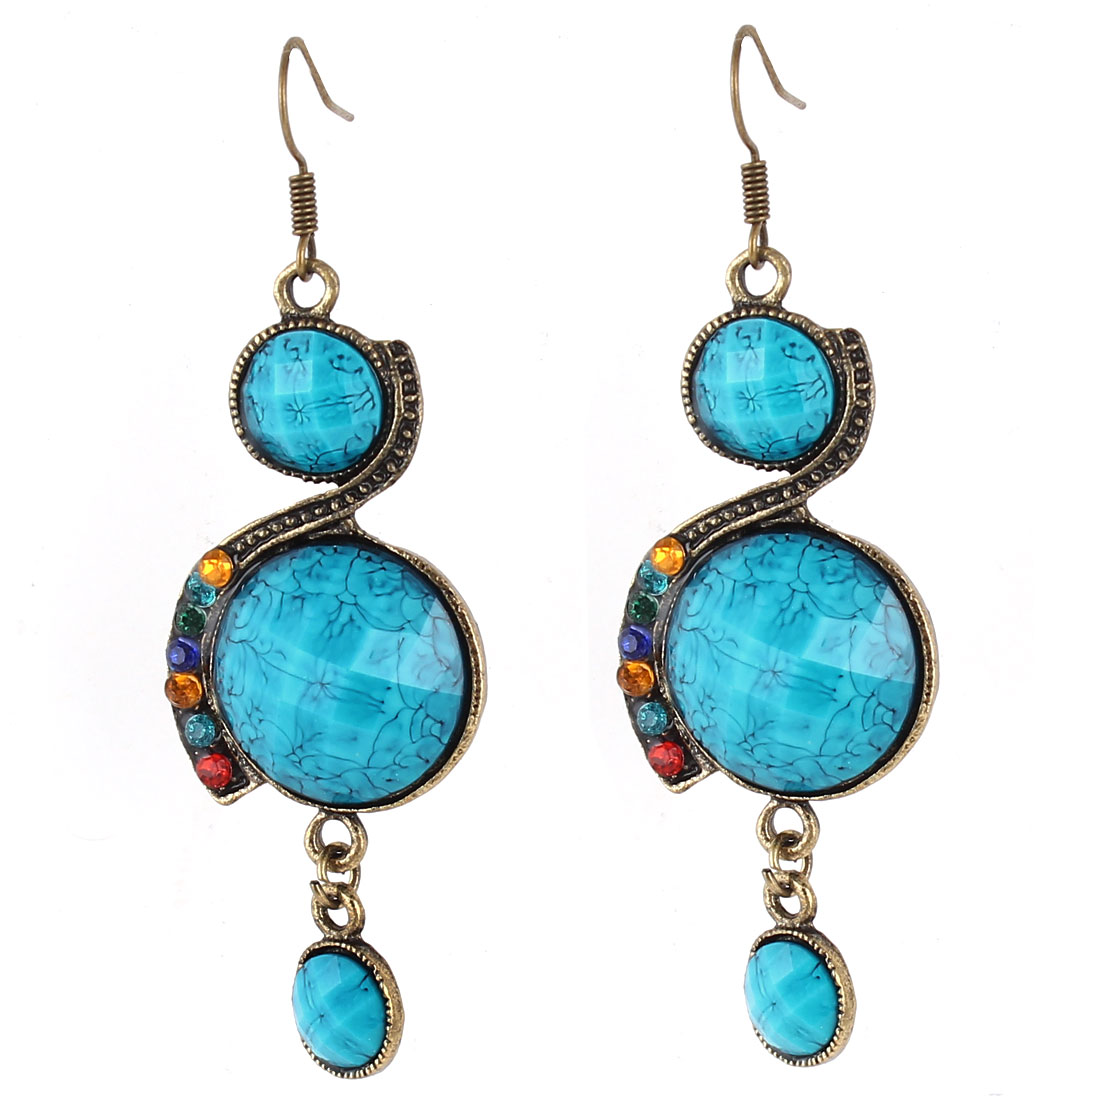 Pair Cyan Round Faced Rhinestone Decor 8 Shaped Bronze Tone Frame Hook Earrings